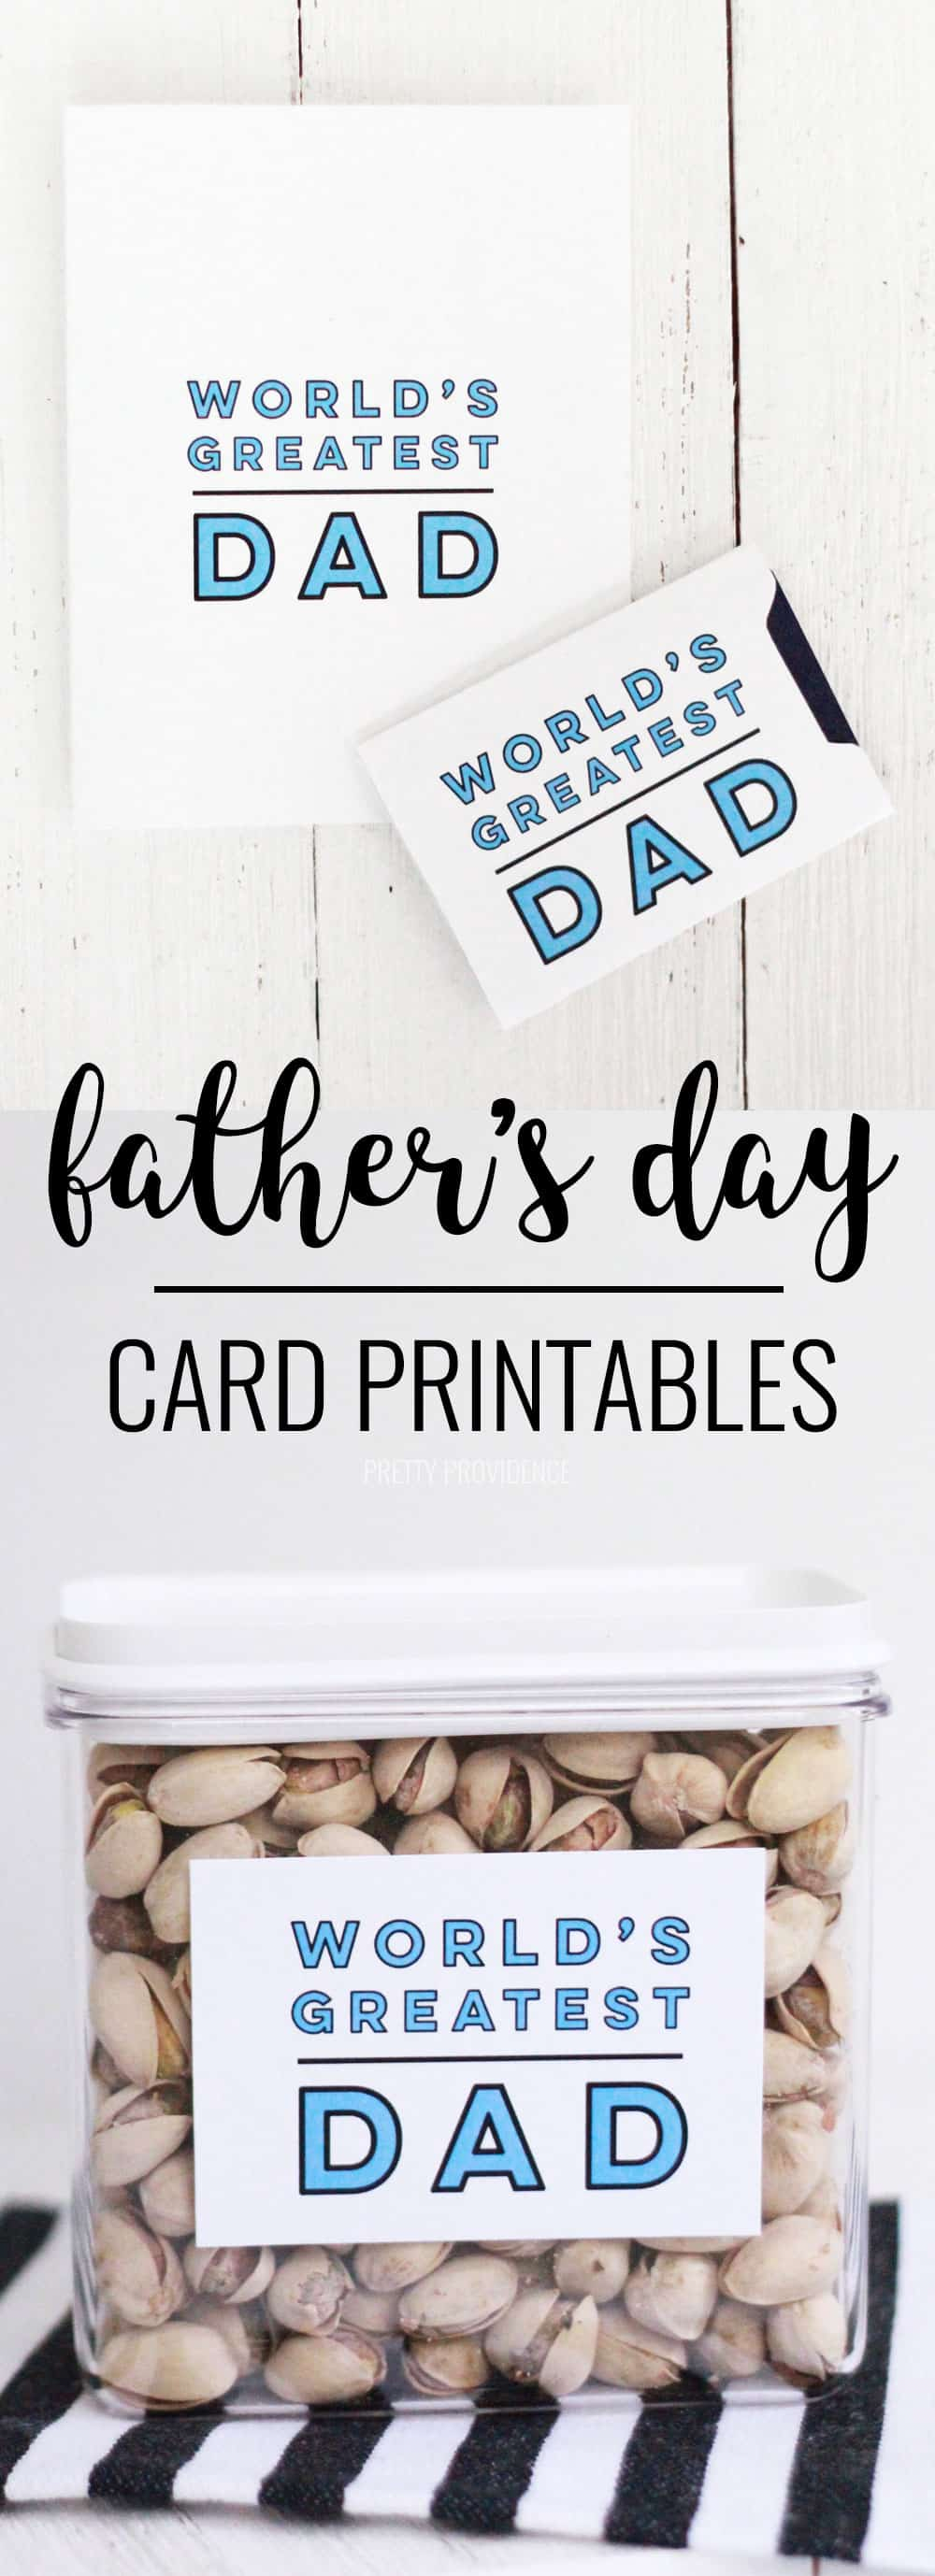 This Father's Day gift card printable is versatile, simple and cute! It can be used for gift cards or as a tag on a jar of his favorite treats!